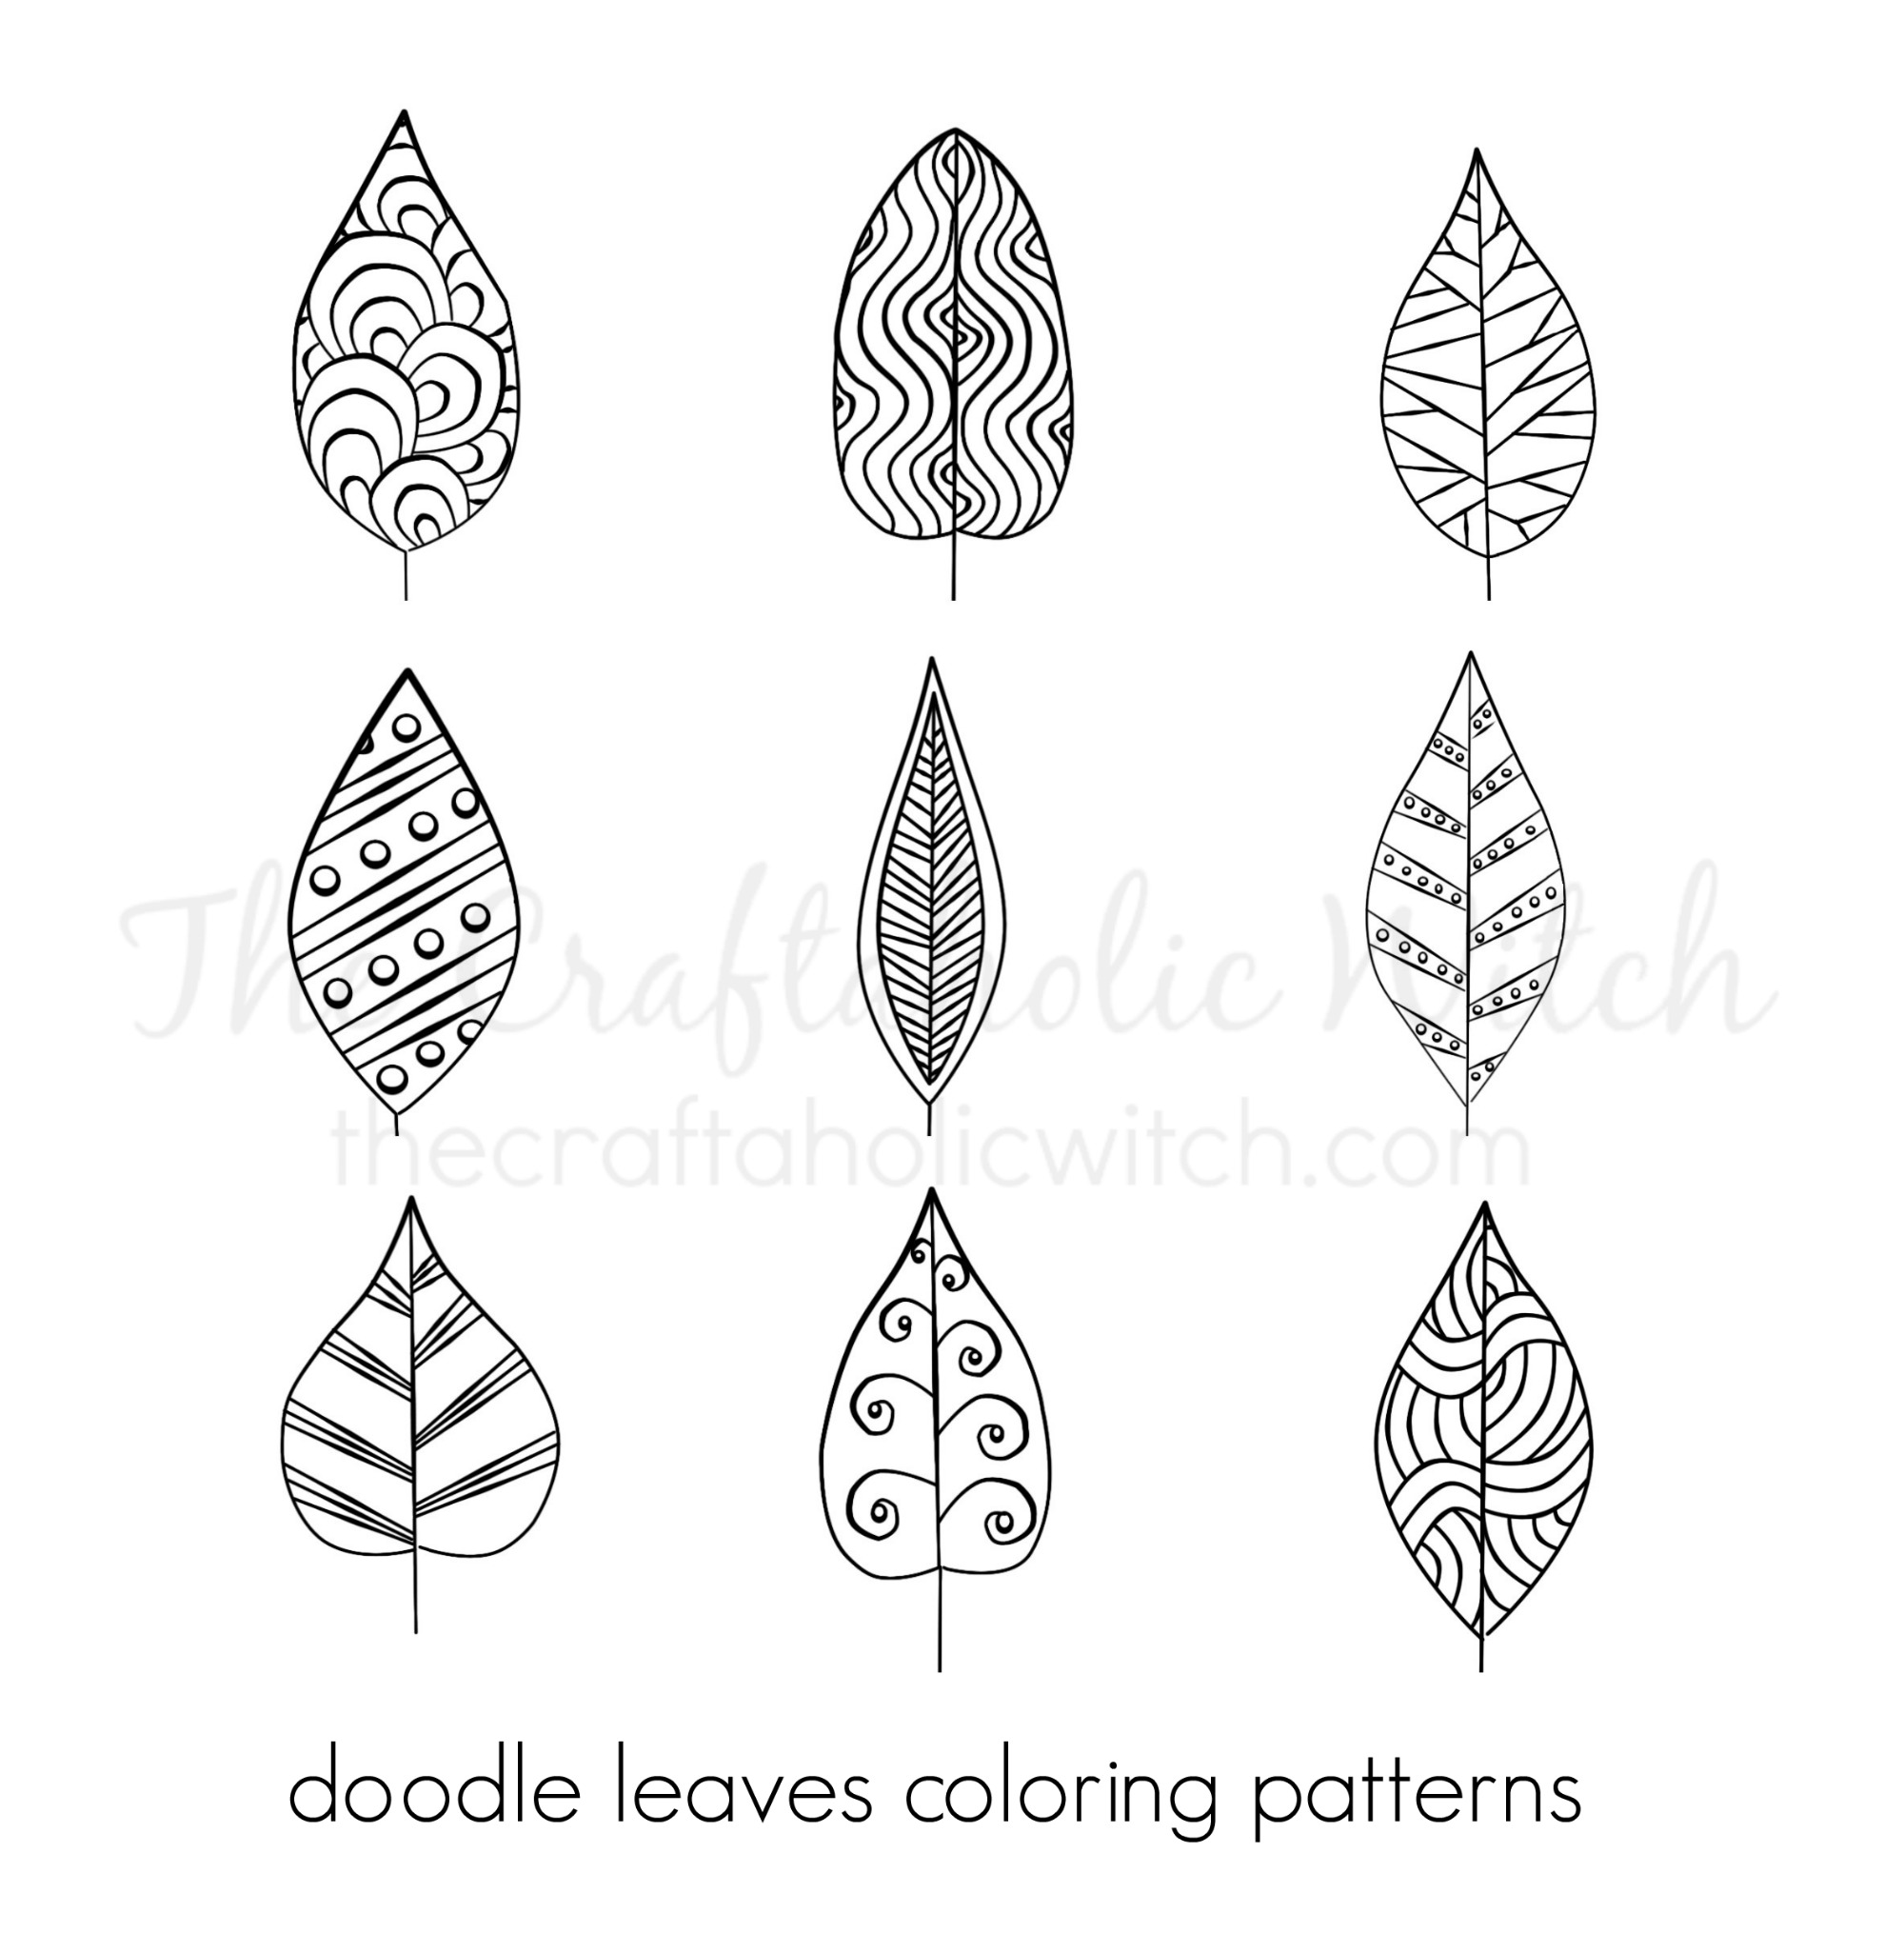 Doodle Leaves Coloring Patterns The Craftaholic Witch